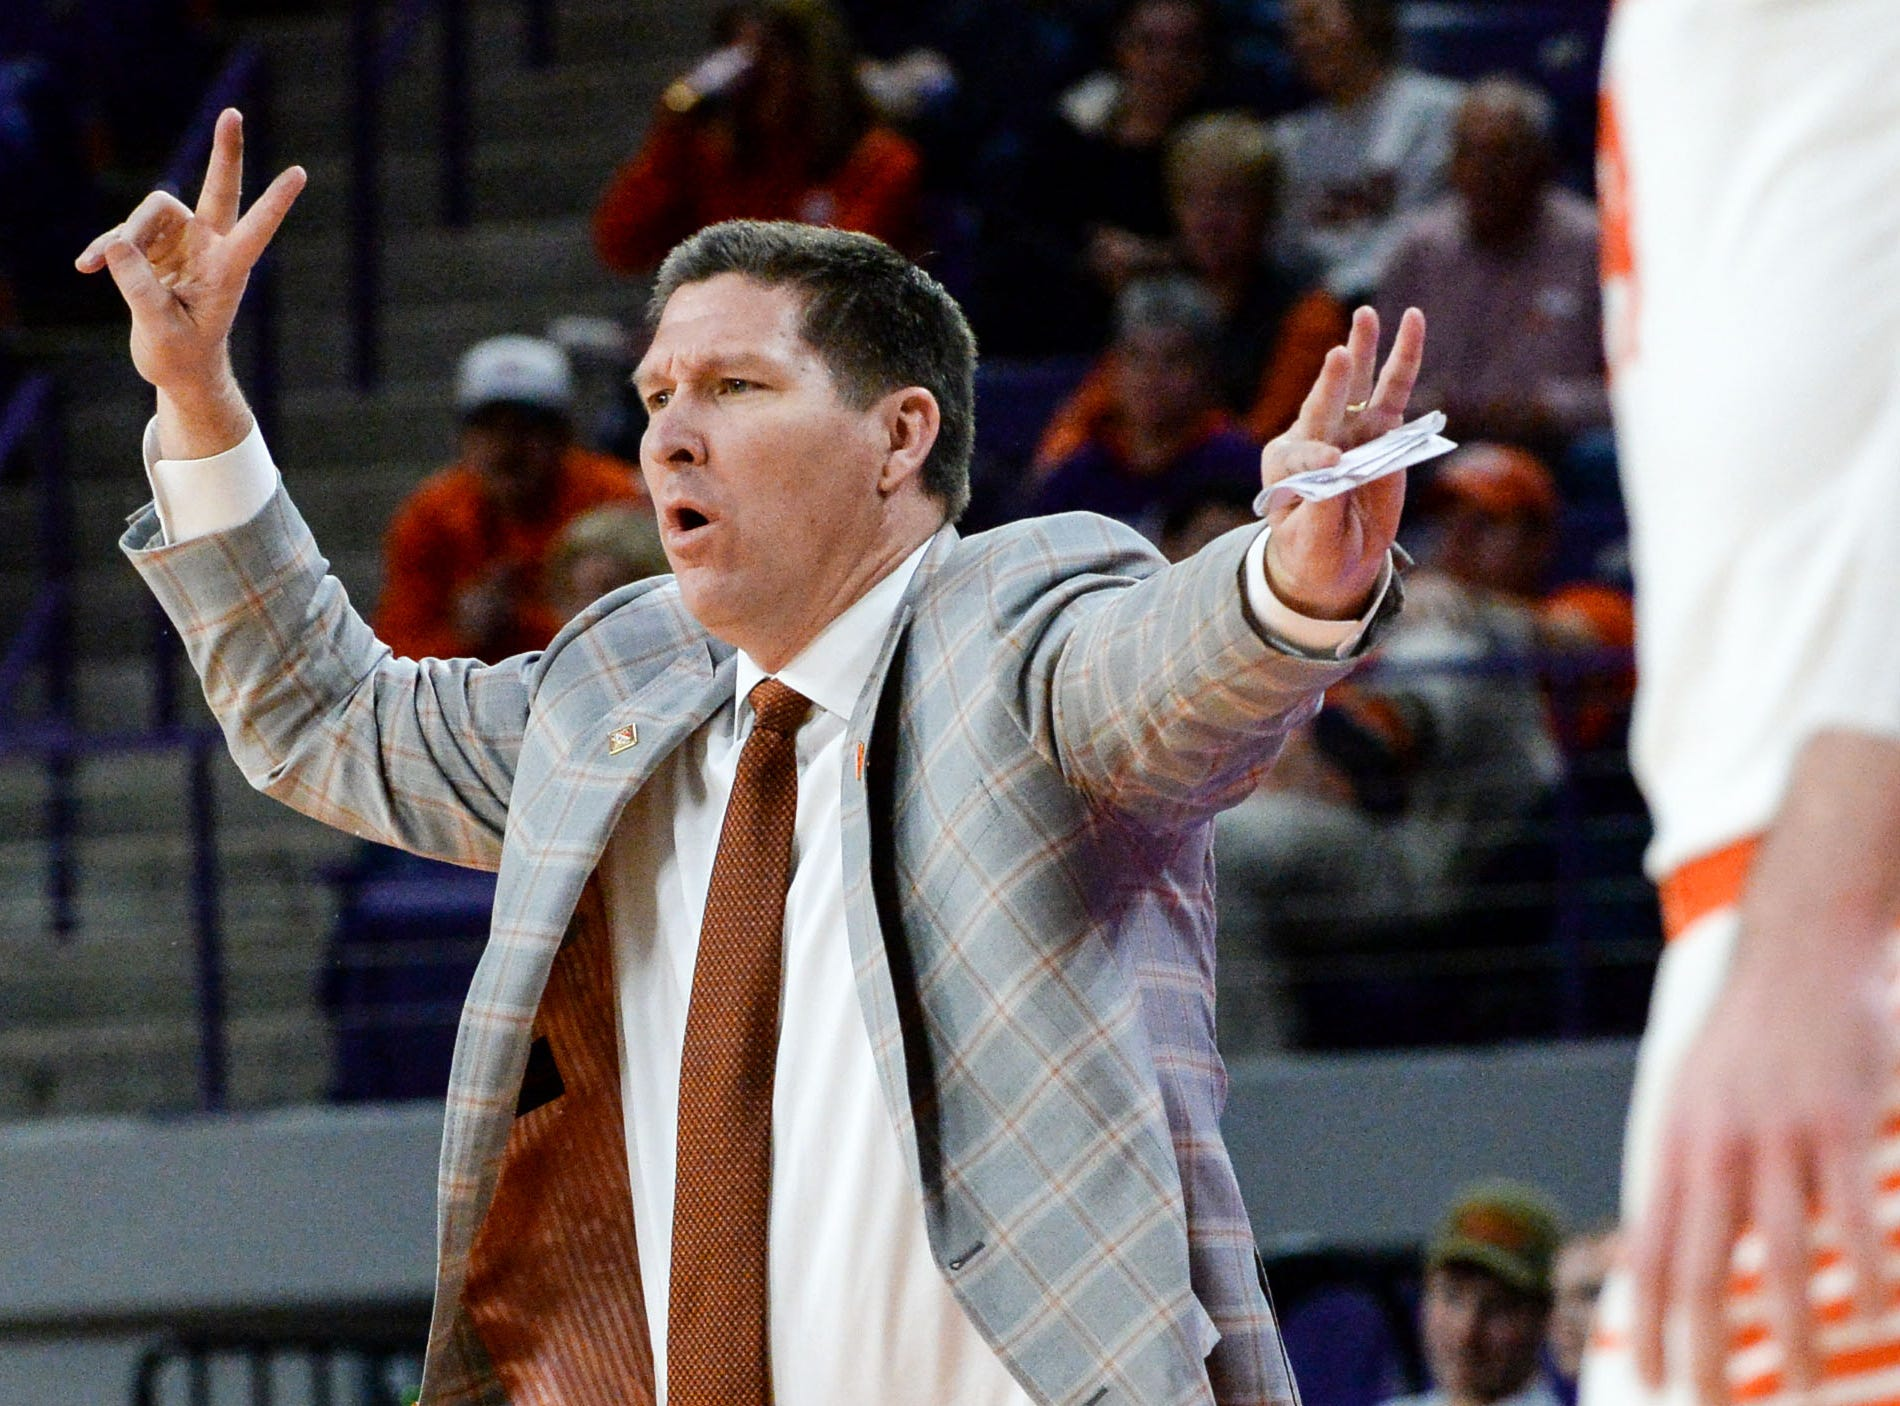 Clemson head coach Brad Brownell communicates with players in the Wright State game during the second half of the NIT at Littlejohn Coliseum in Clemson Tuesday, March 19, 2019.